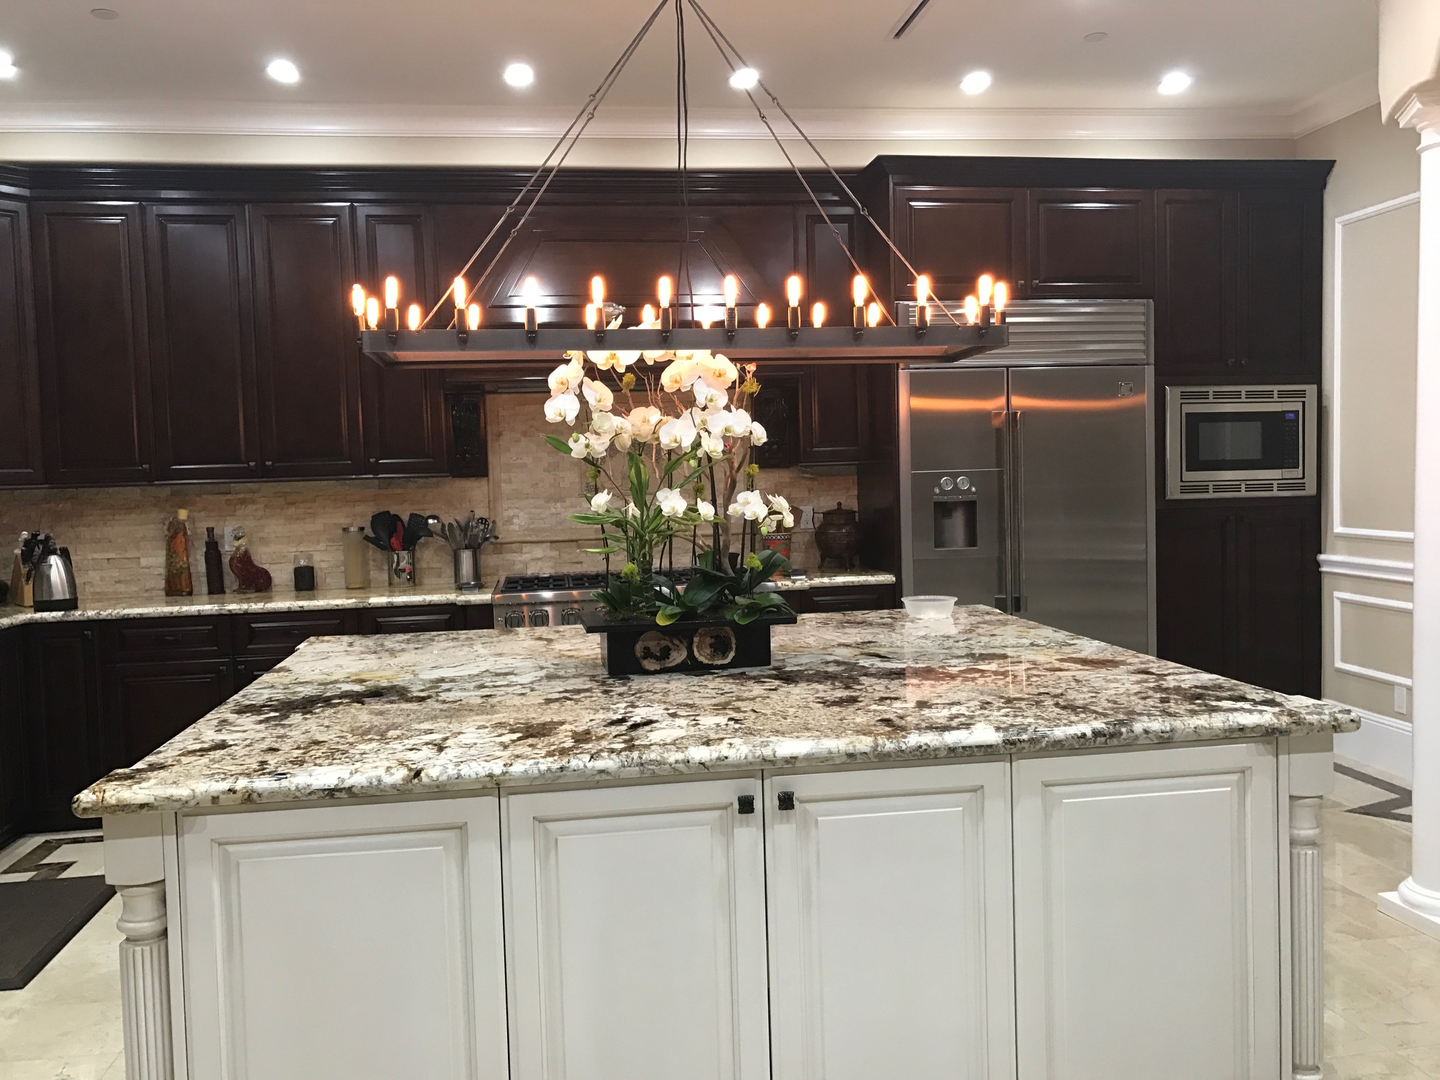 Marble kitchen countertop with unique lighting